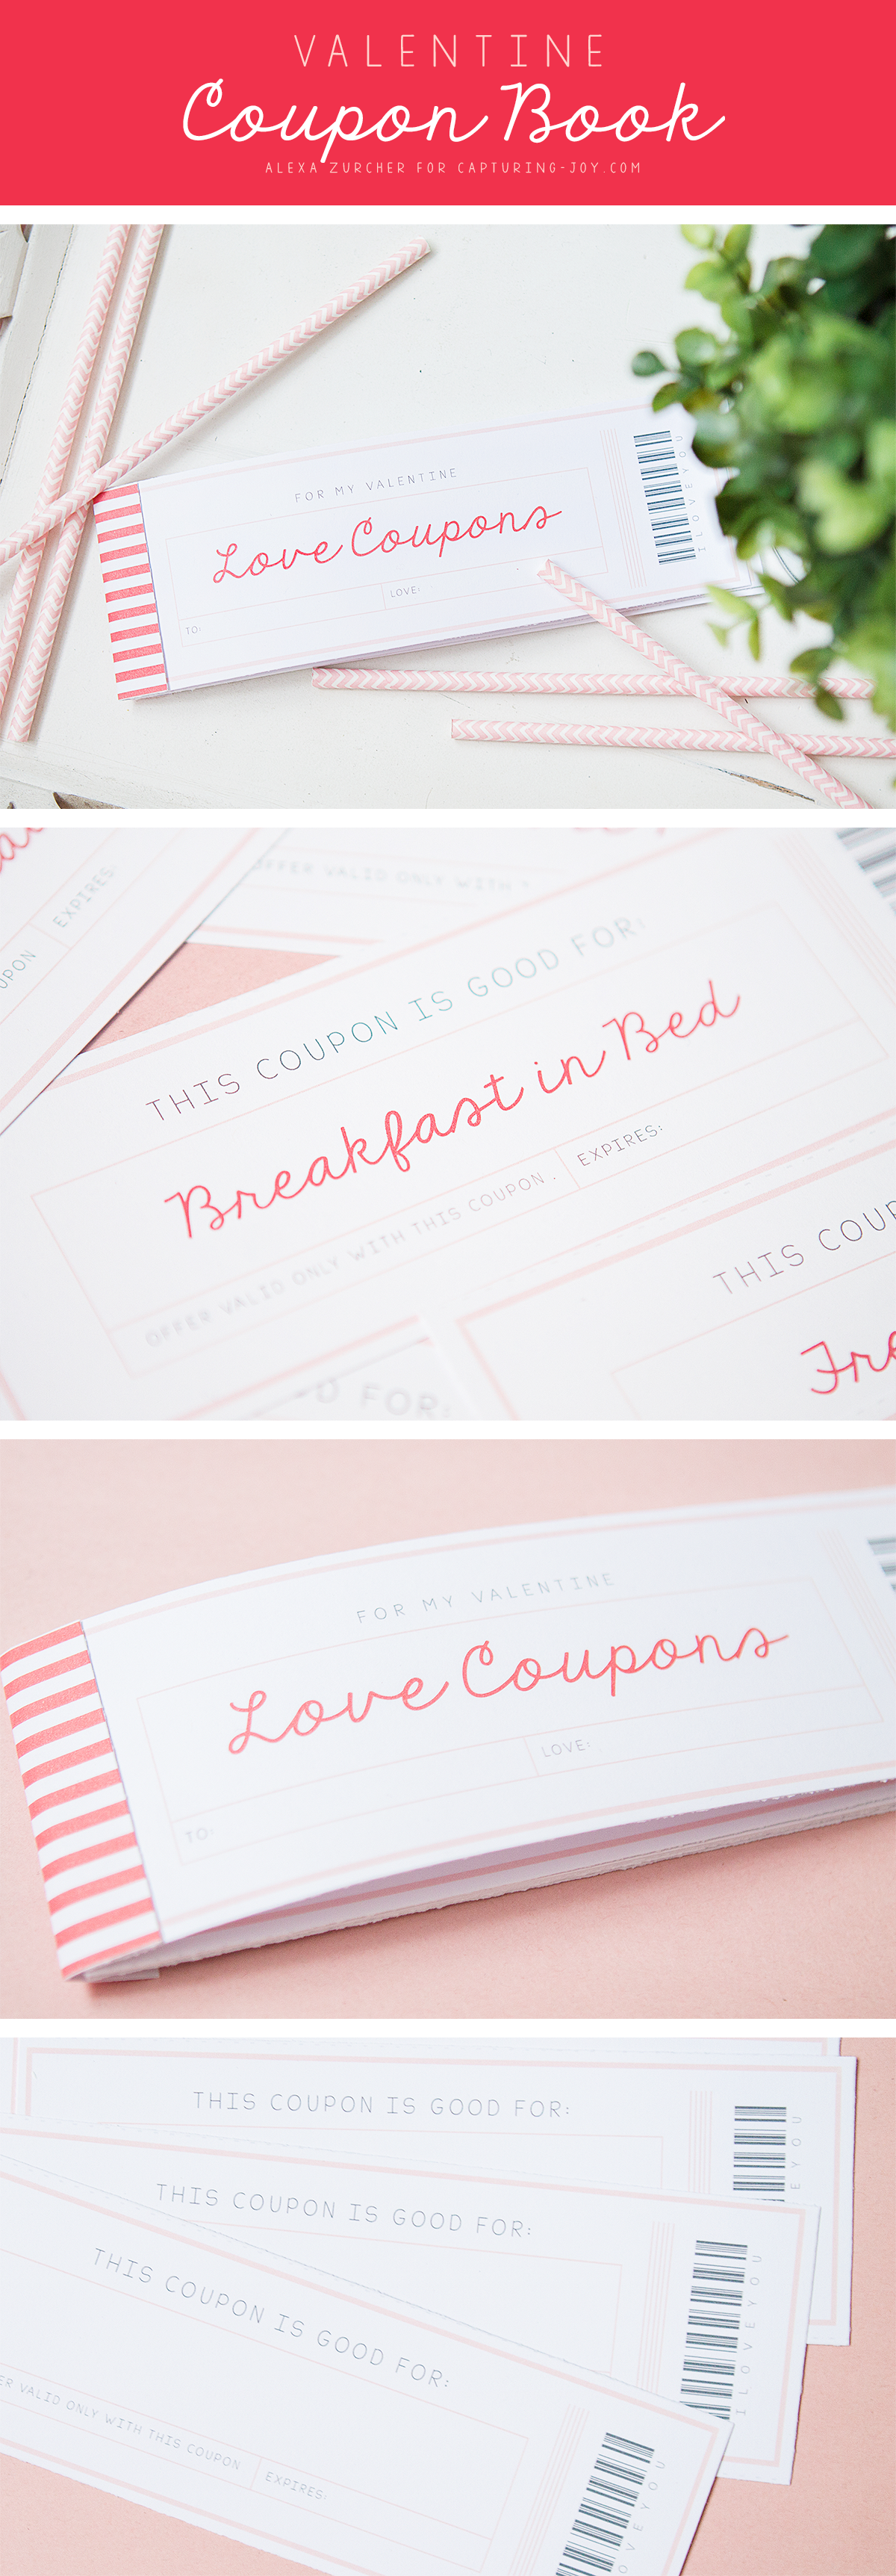 valentine coupon book printable free printable coupons and books